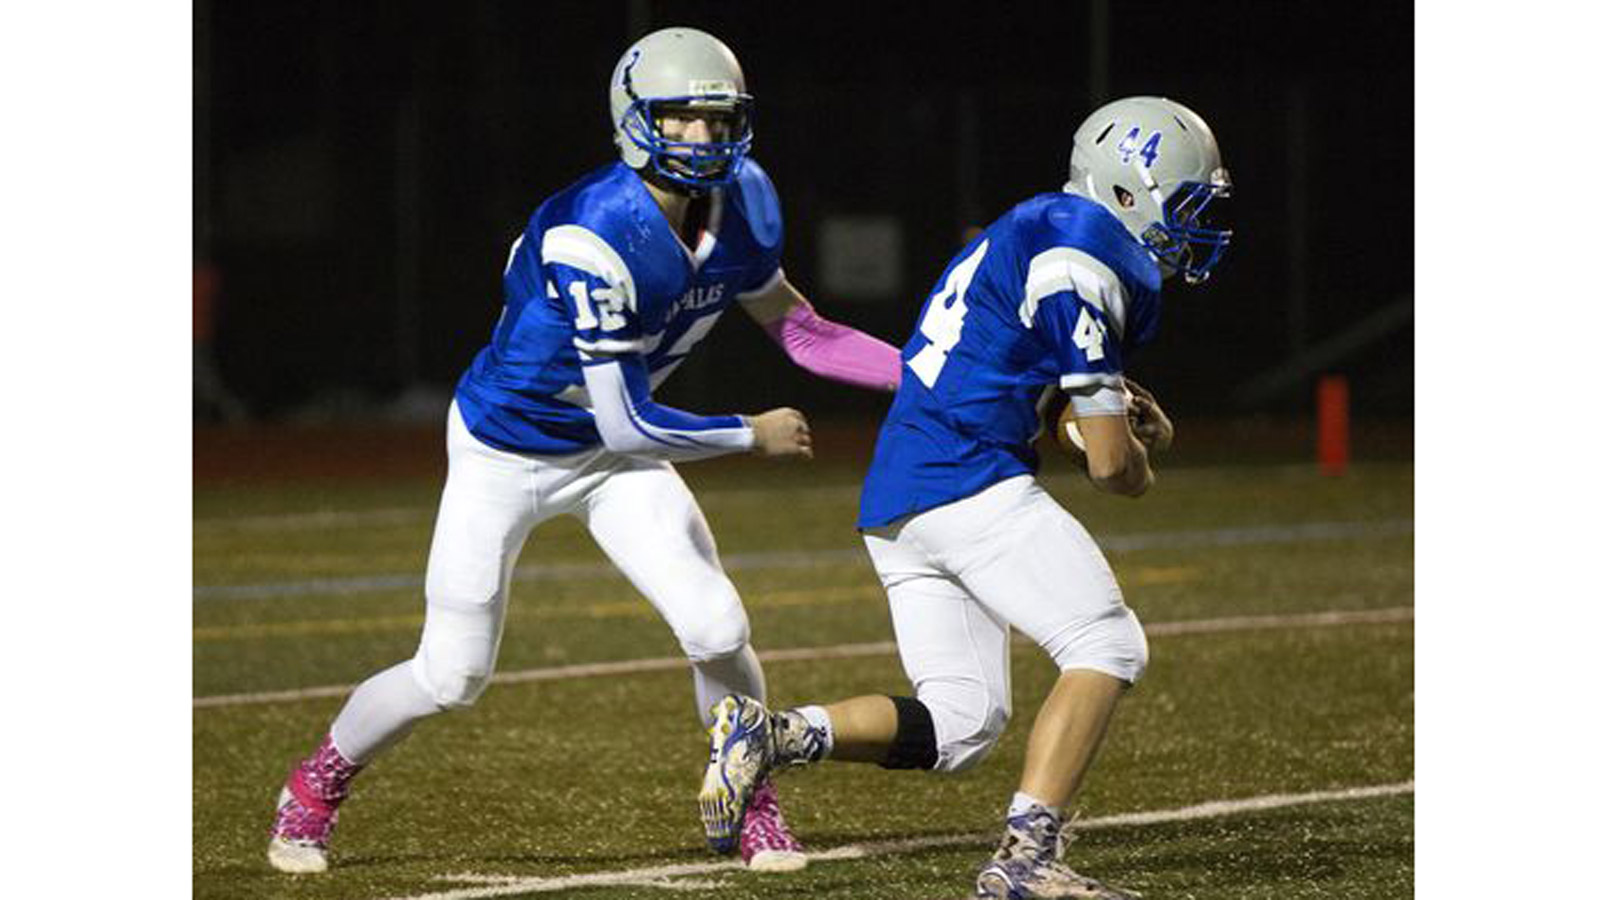 Poudre High School quarterback Taylor Gaes is on the left, player #12, handing off ball during a 2014 football game (credit: Coloradoan Library)